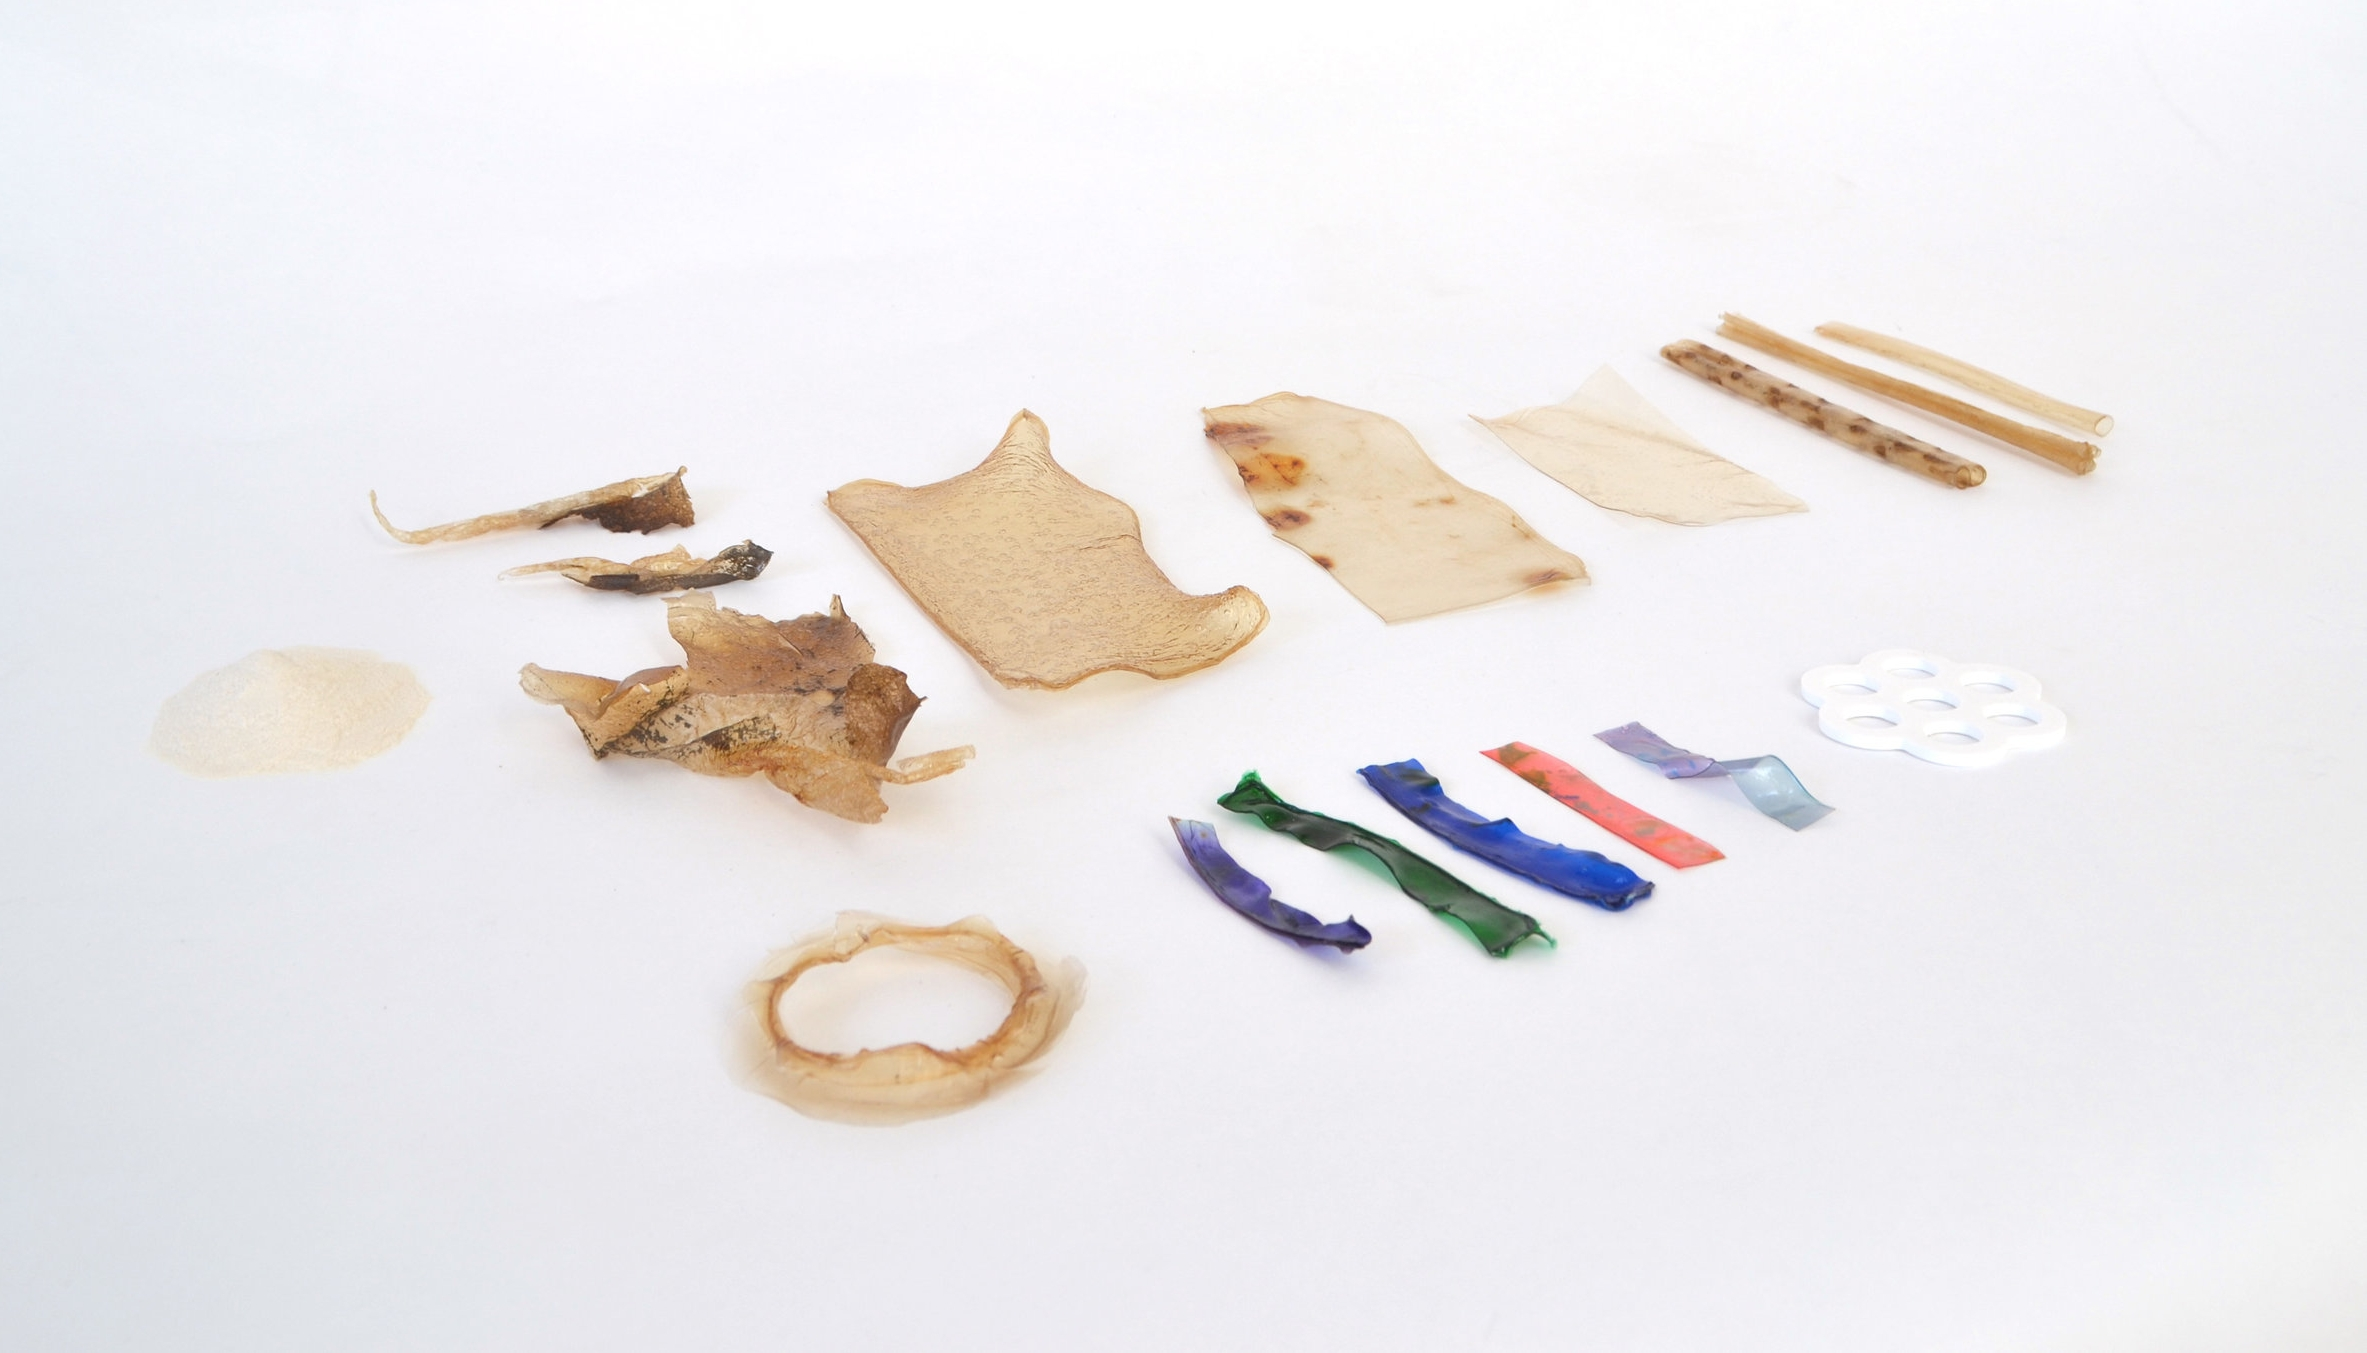 Seaweed-based polymers to replace single-use plastic variables. - Research and recipes in development